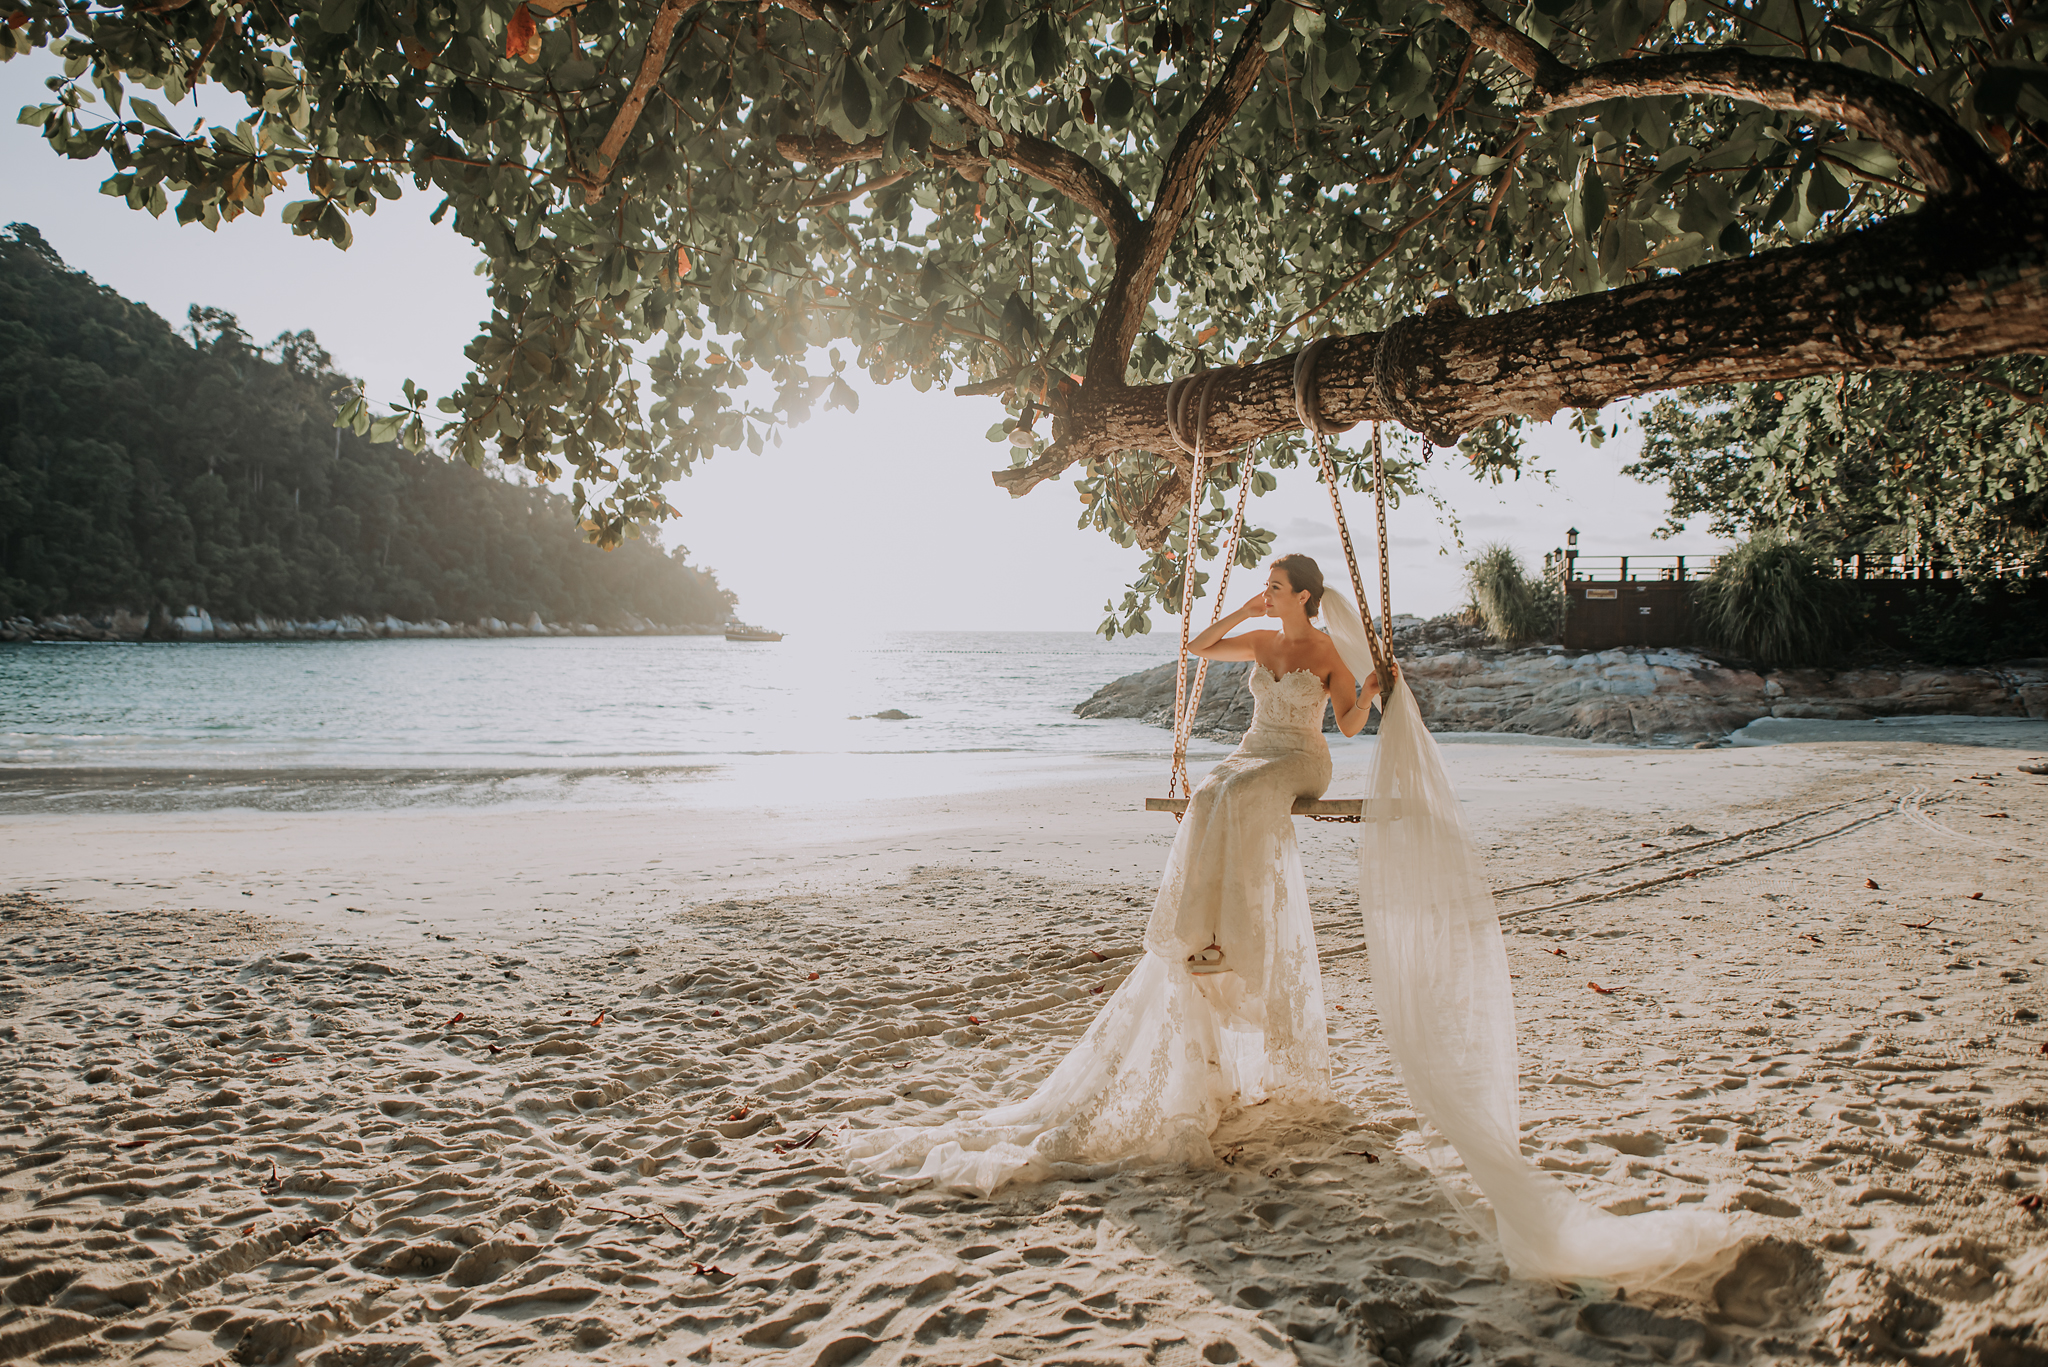 Bride with long lace gown and veil on beach front swing - photo by Edwin Tan Photography